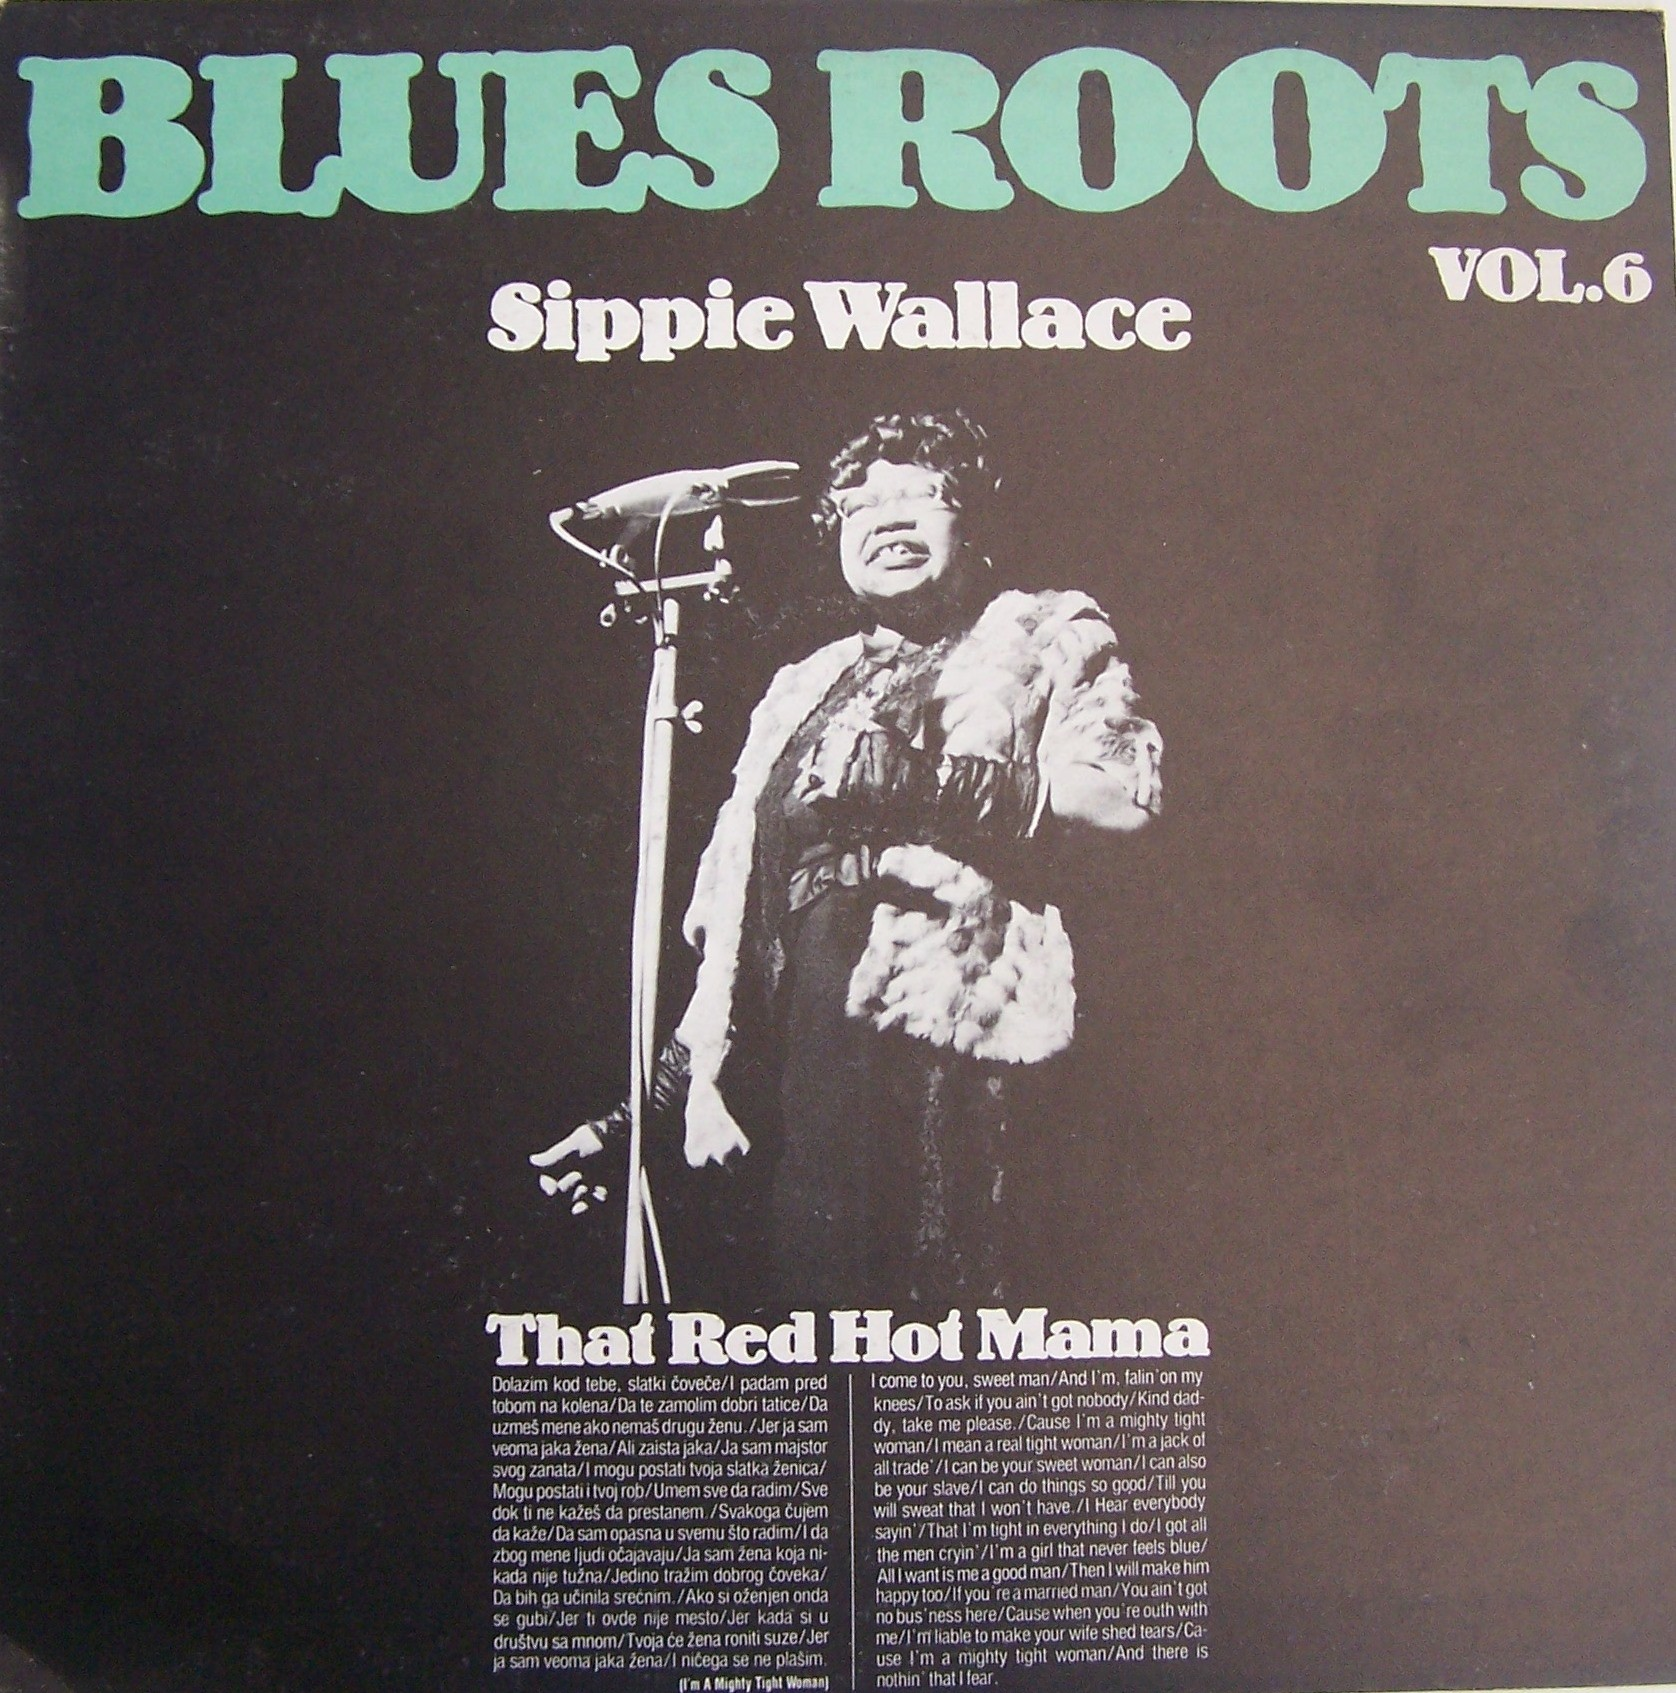 Wallace Sippie - Blues Roots Vol 6 - That Red Hot Mama